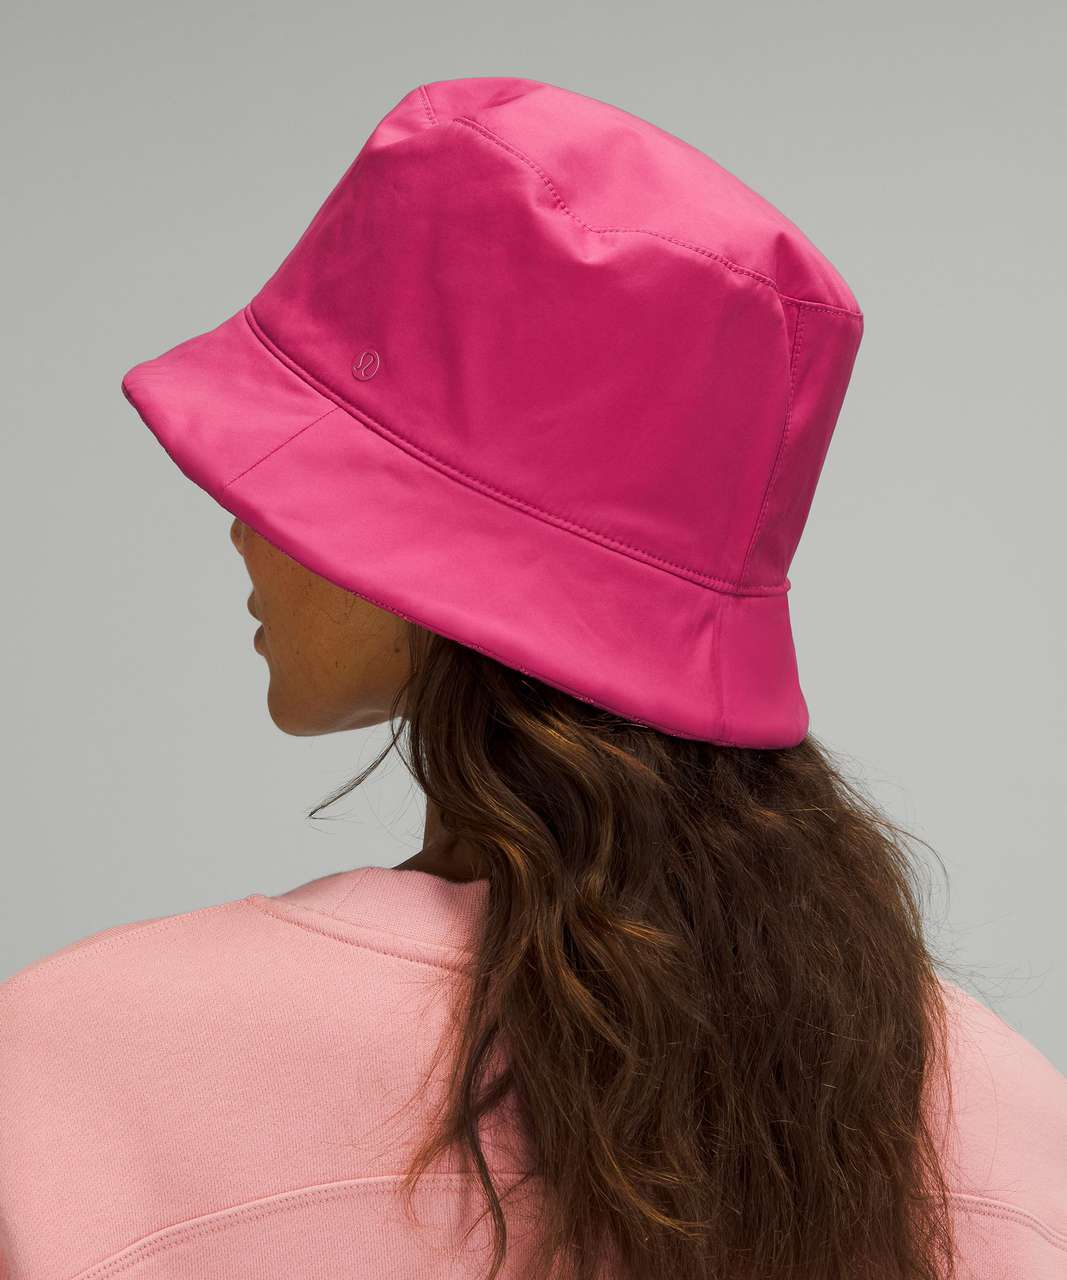 Lululemon Reversible Quilted Bucket Hat - Pink Lychee